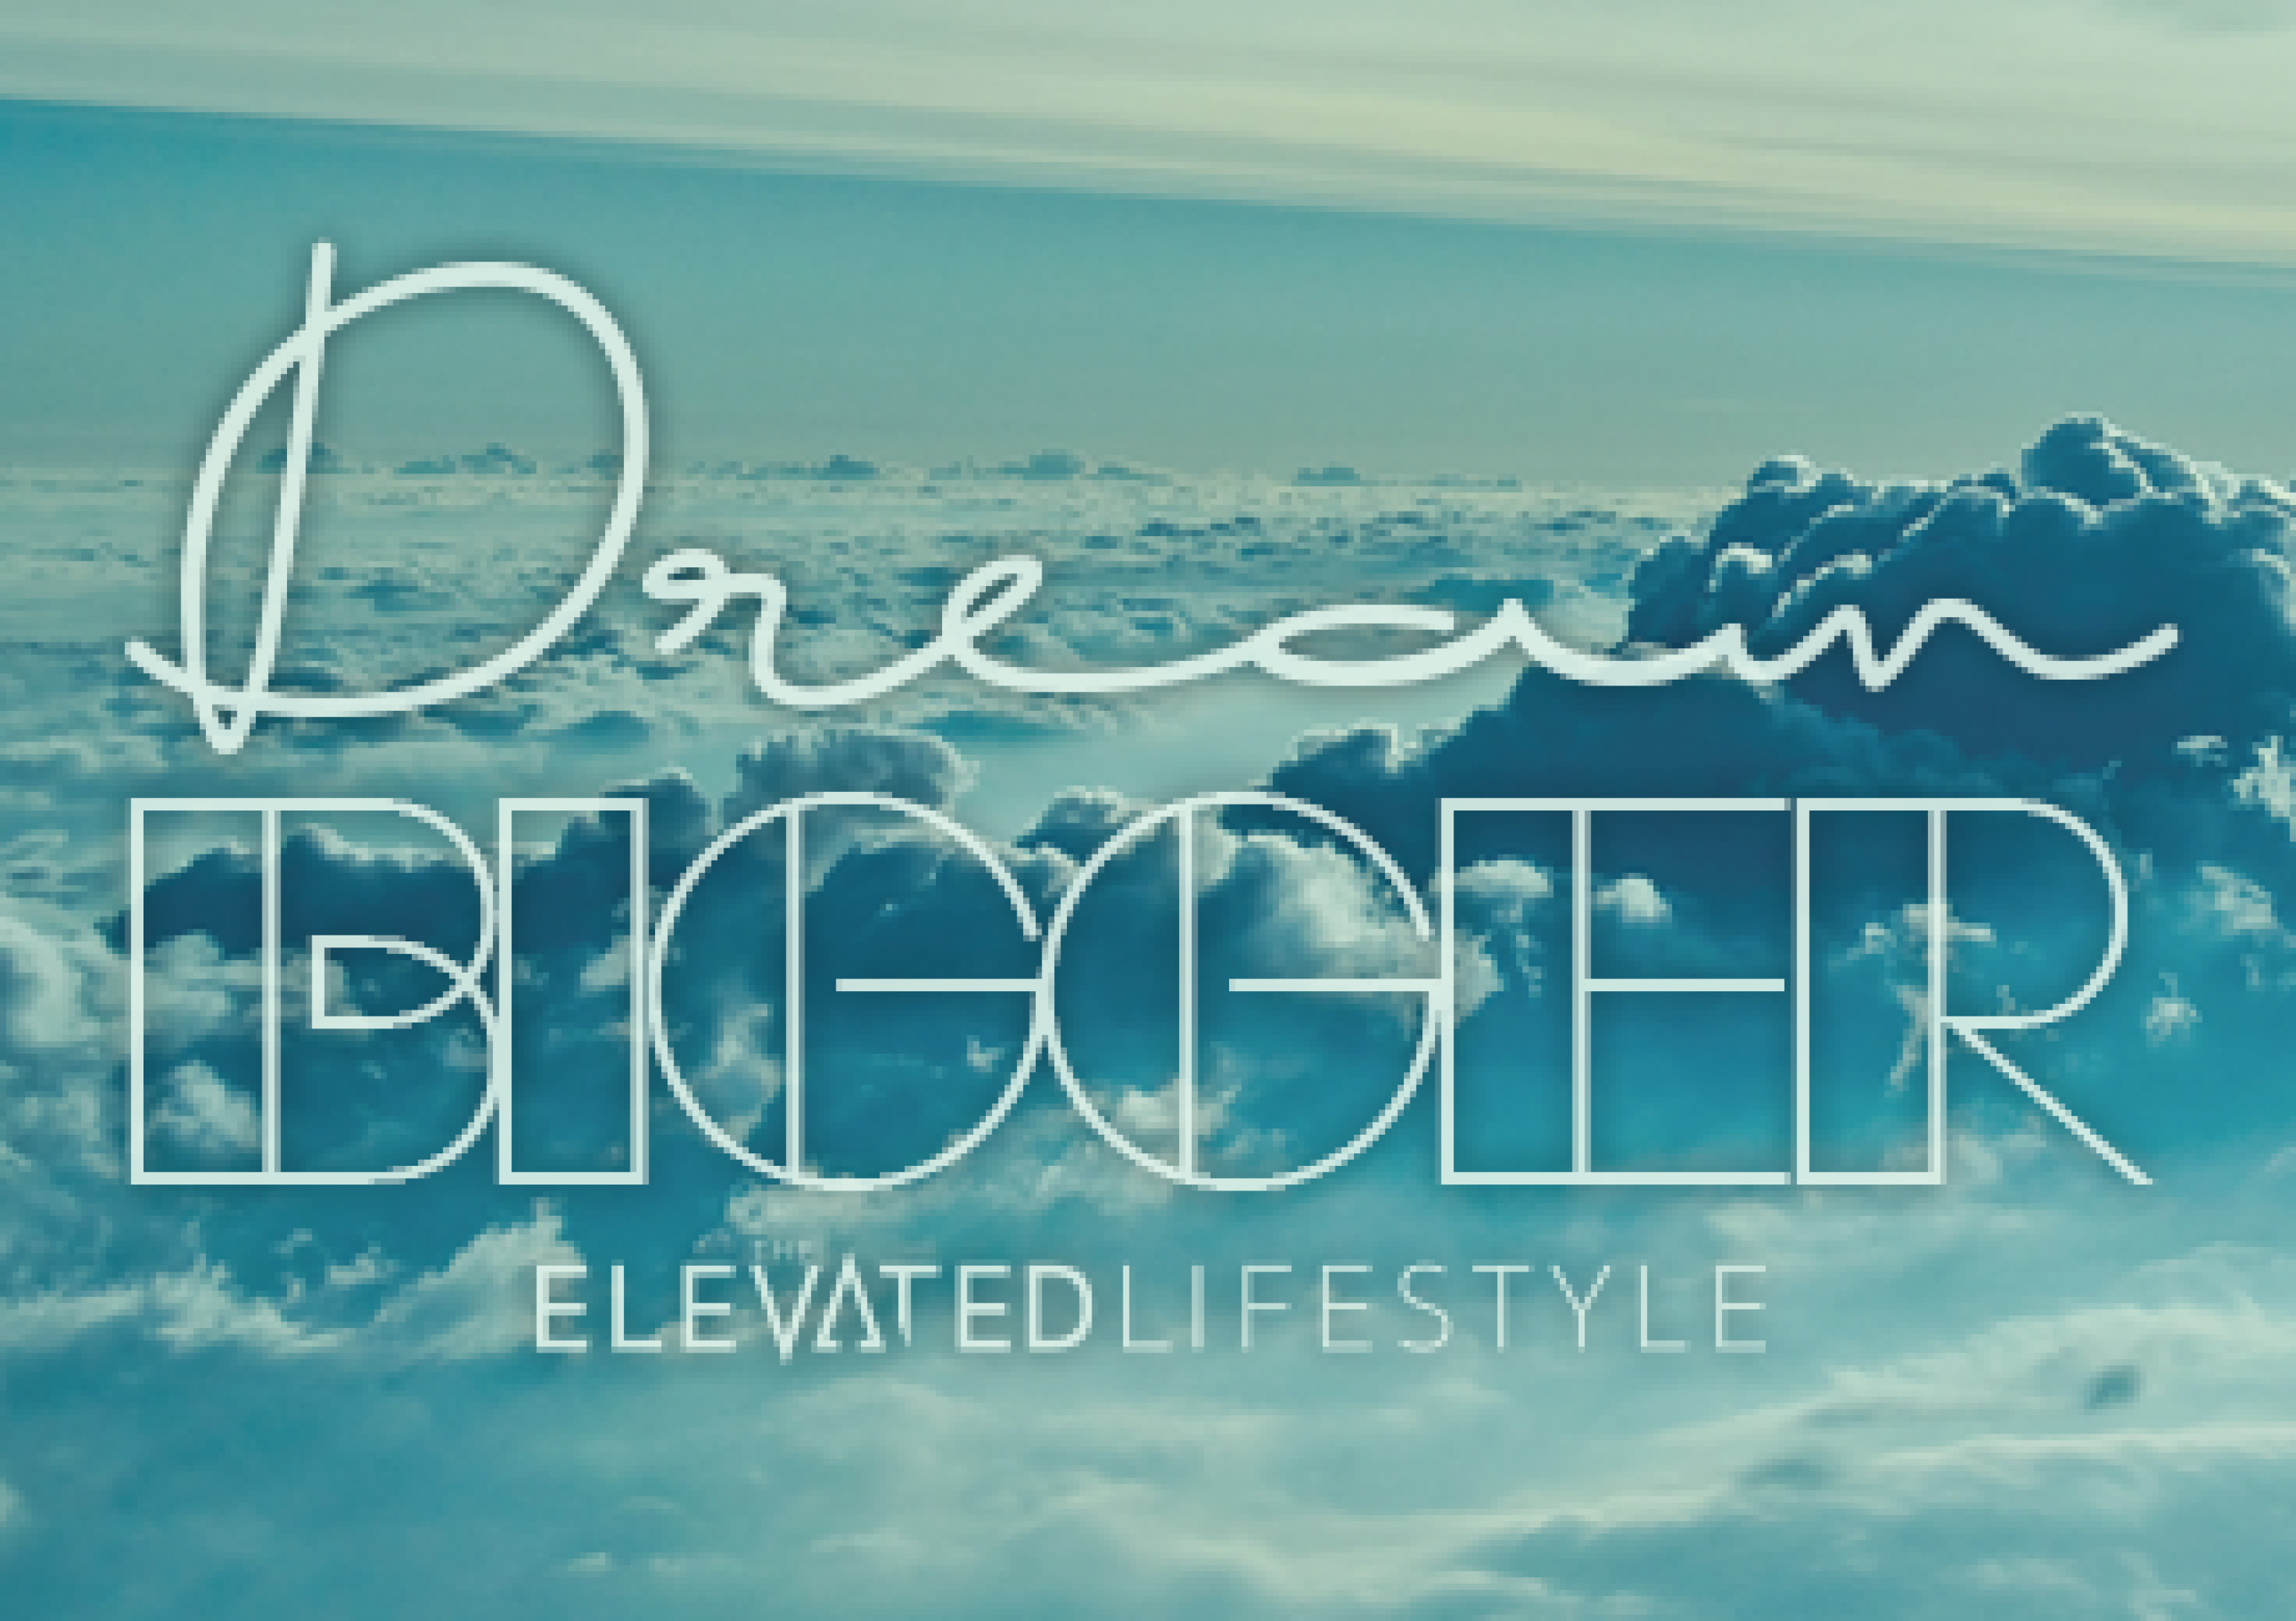 The Elevated Lifestyle